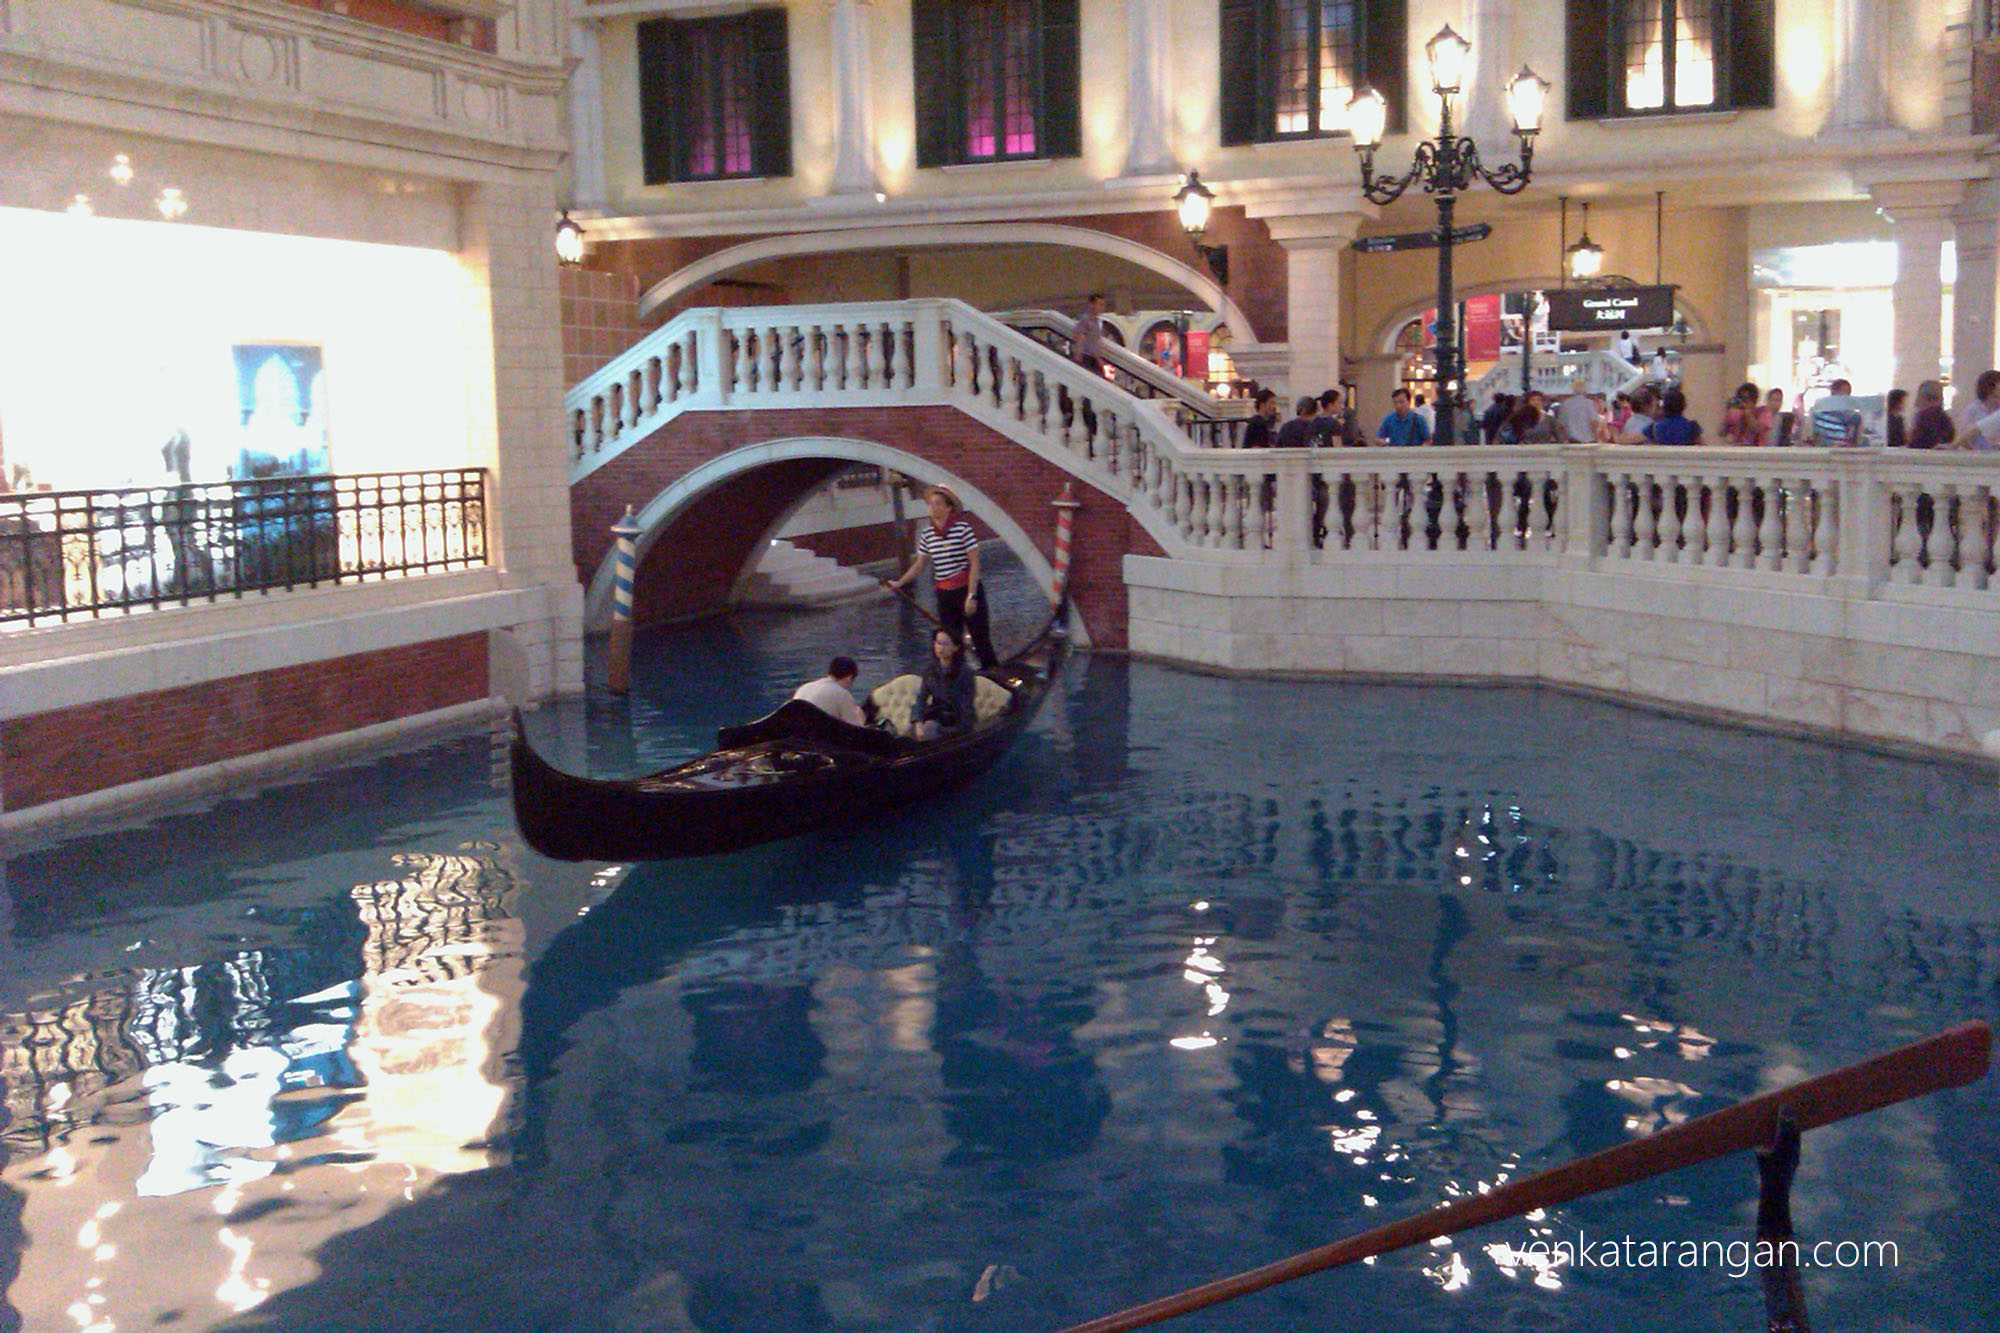 Gondola service in The Venetian, Macau